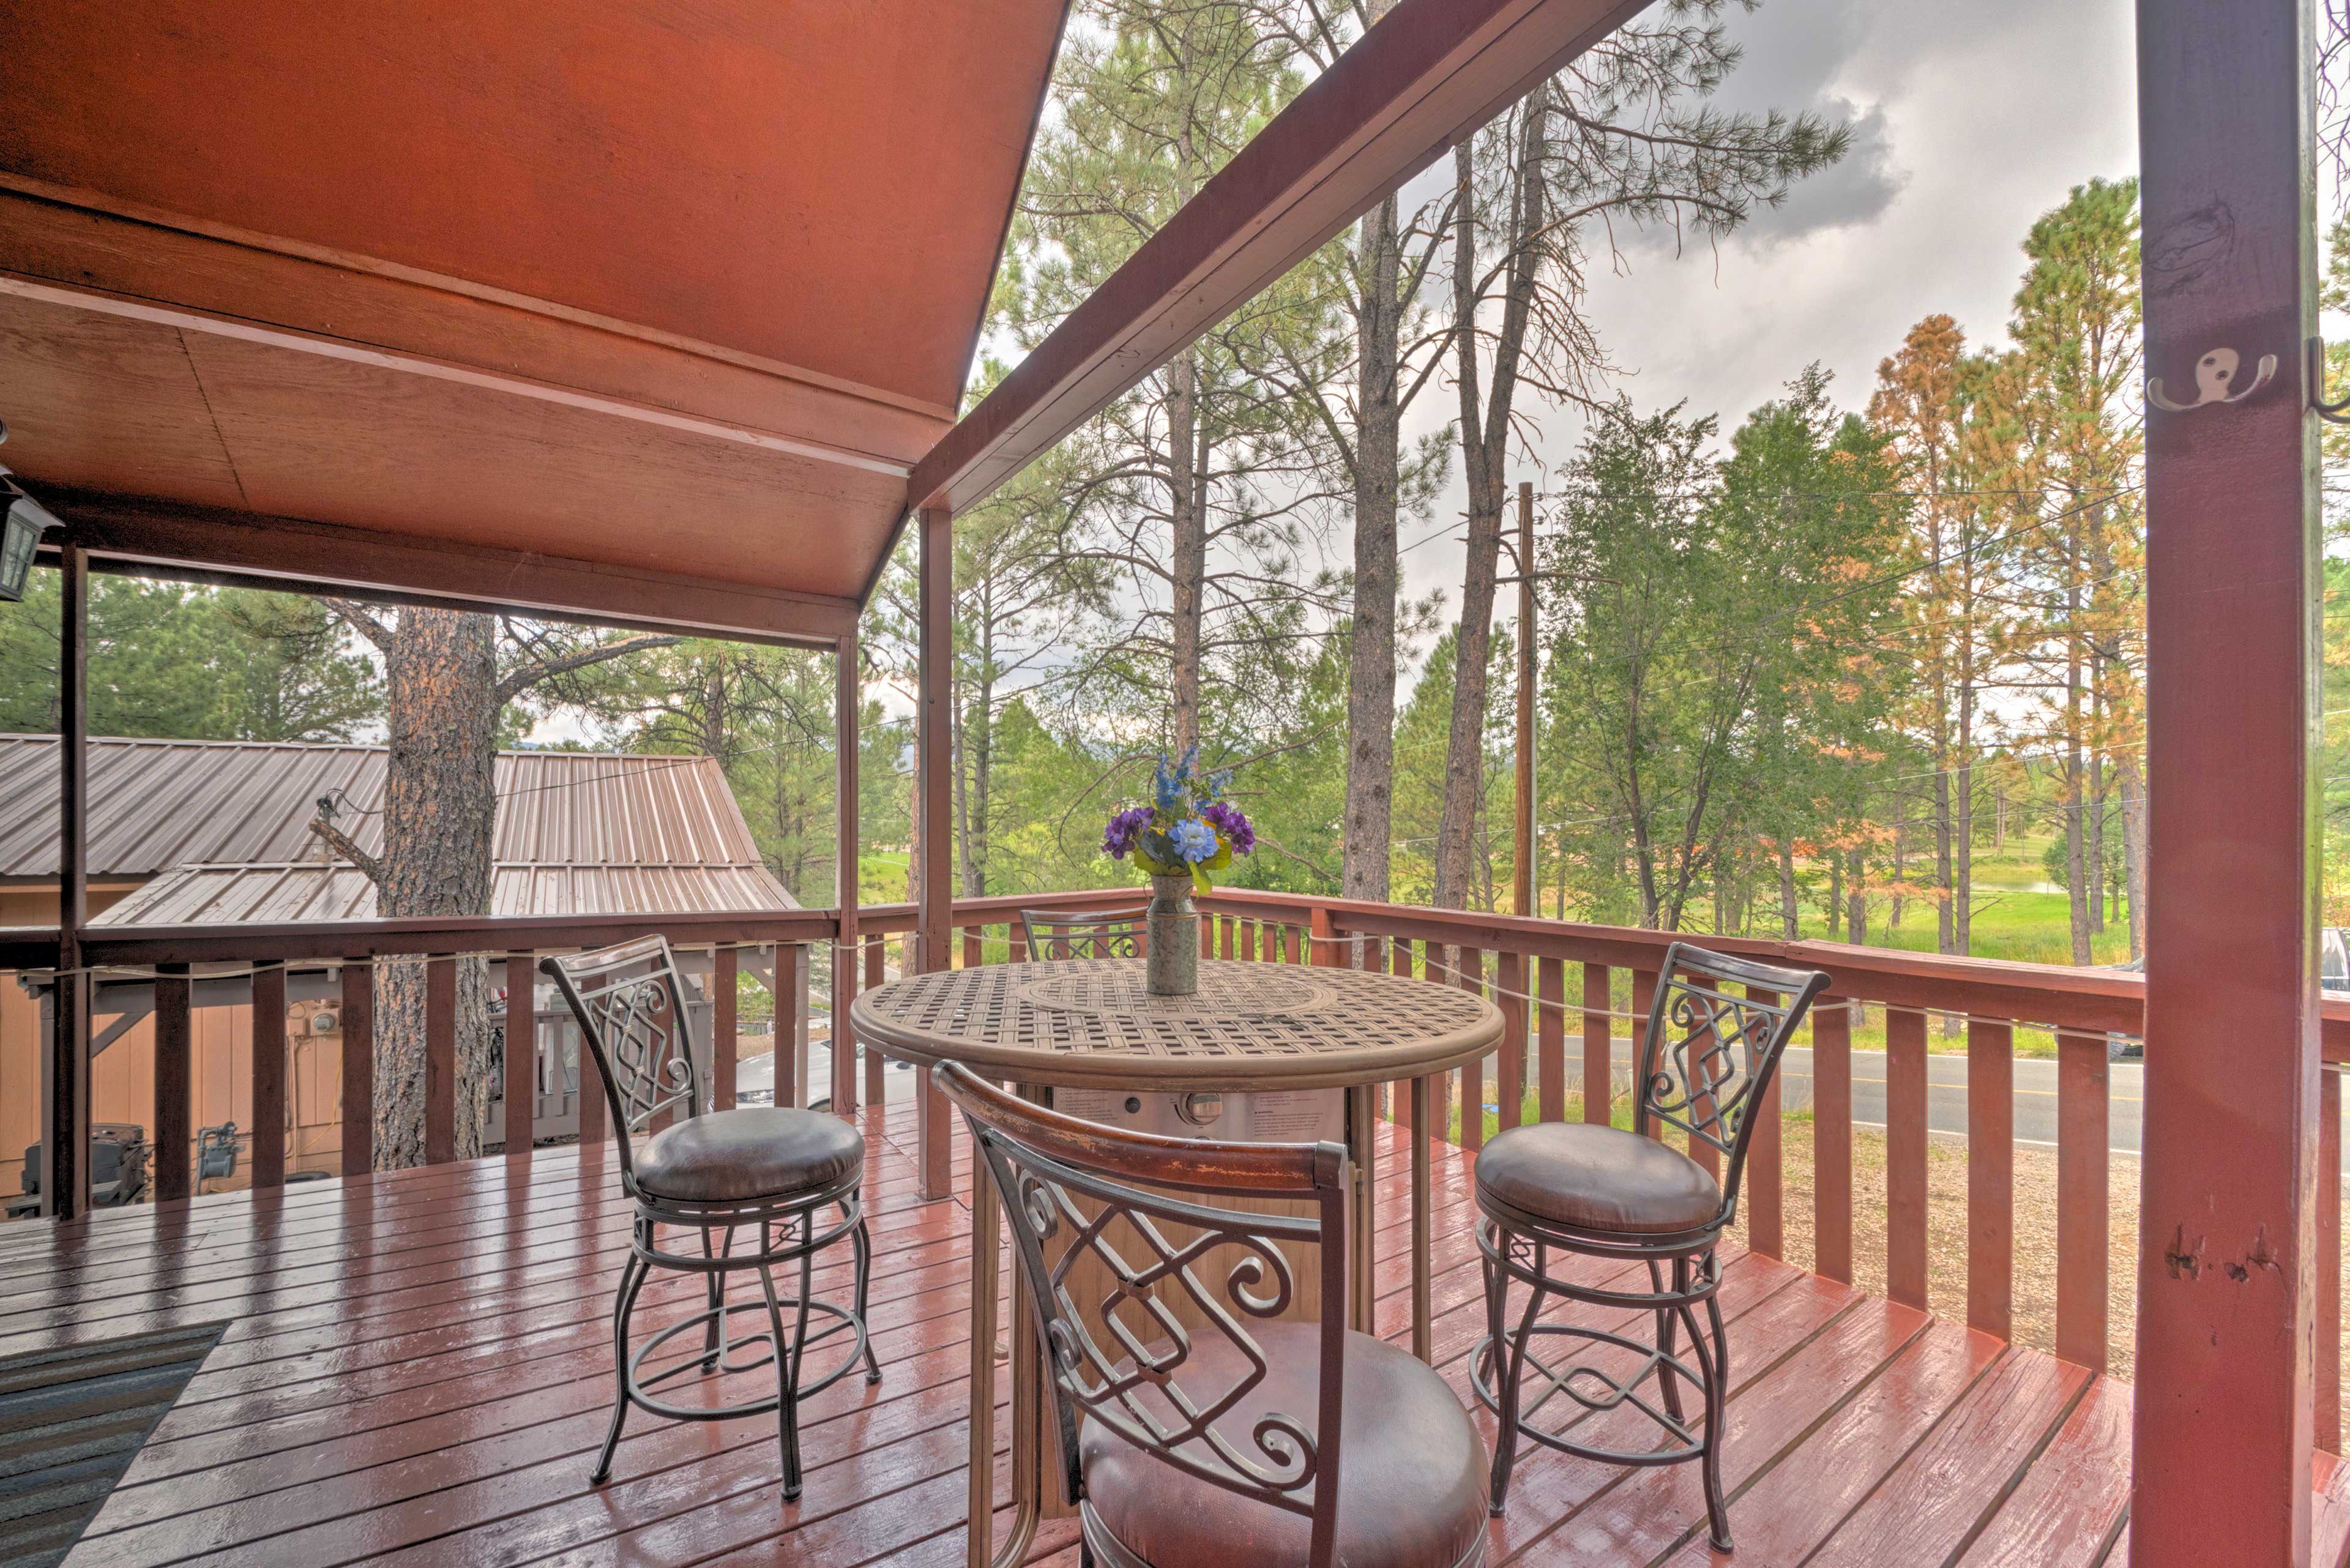 Private Deck | Outdoor Dining Space